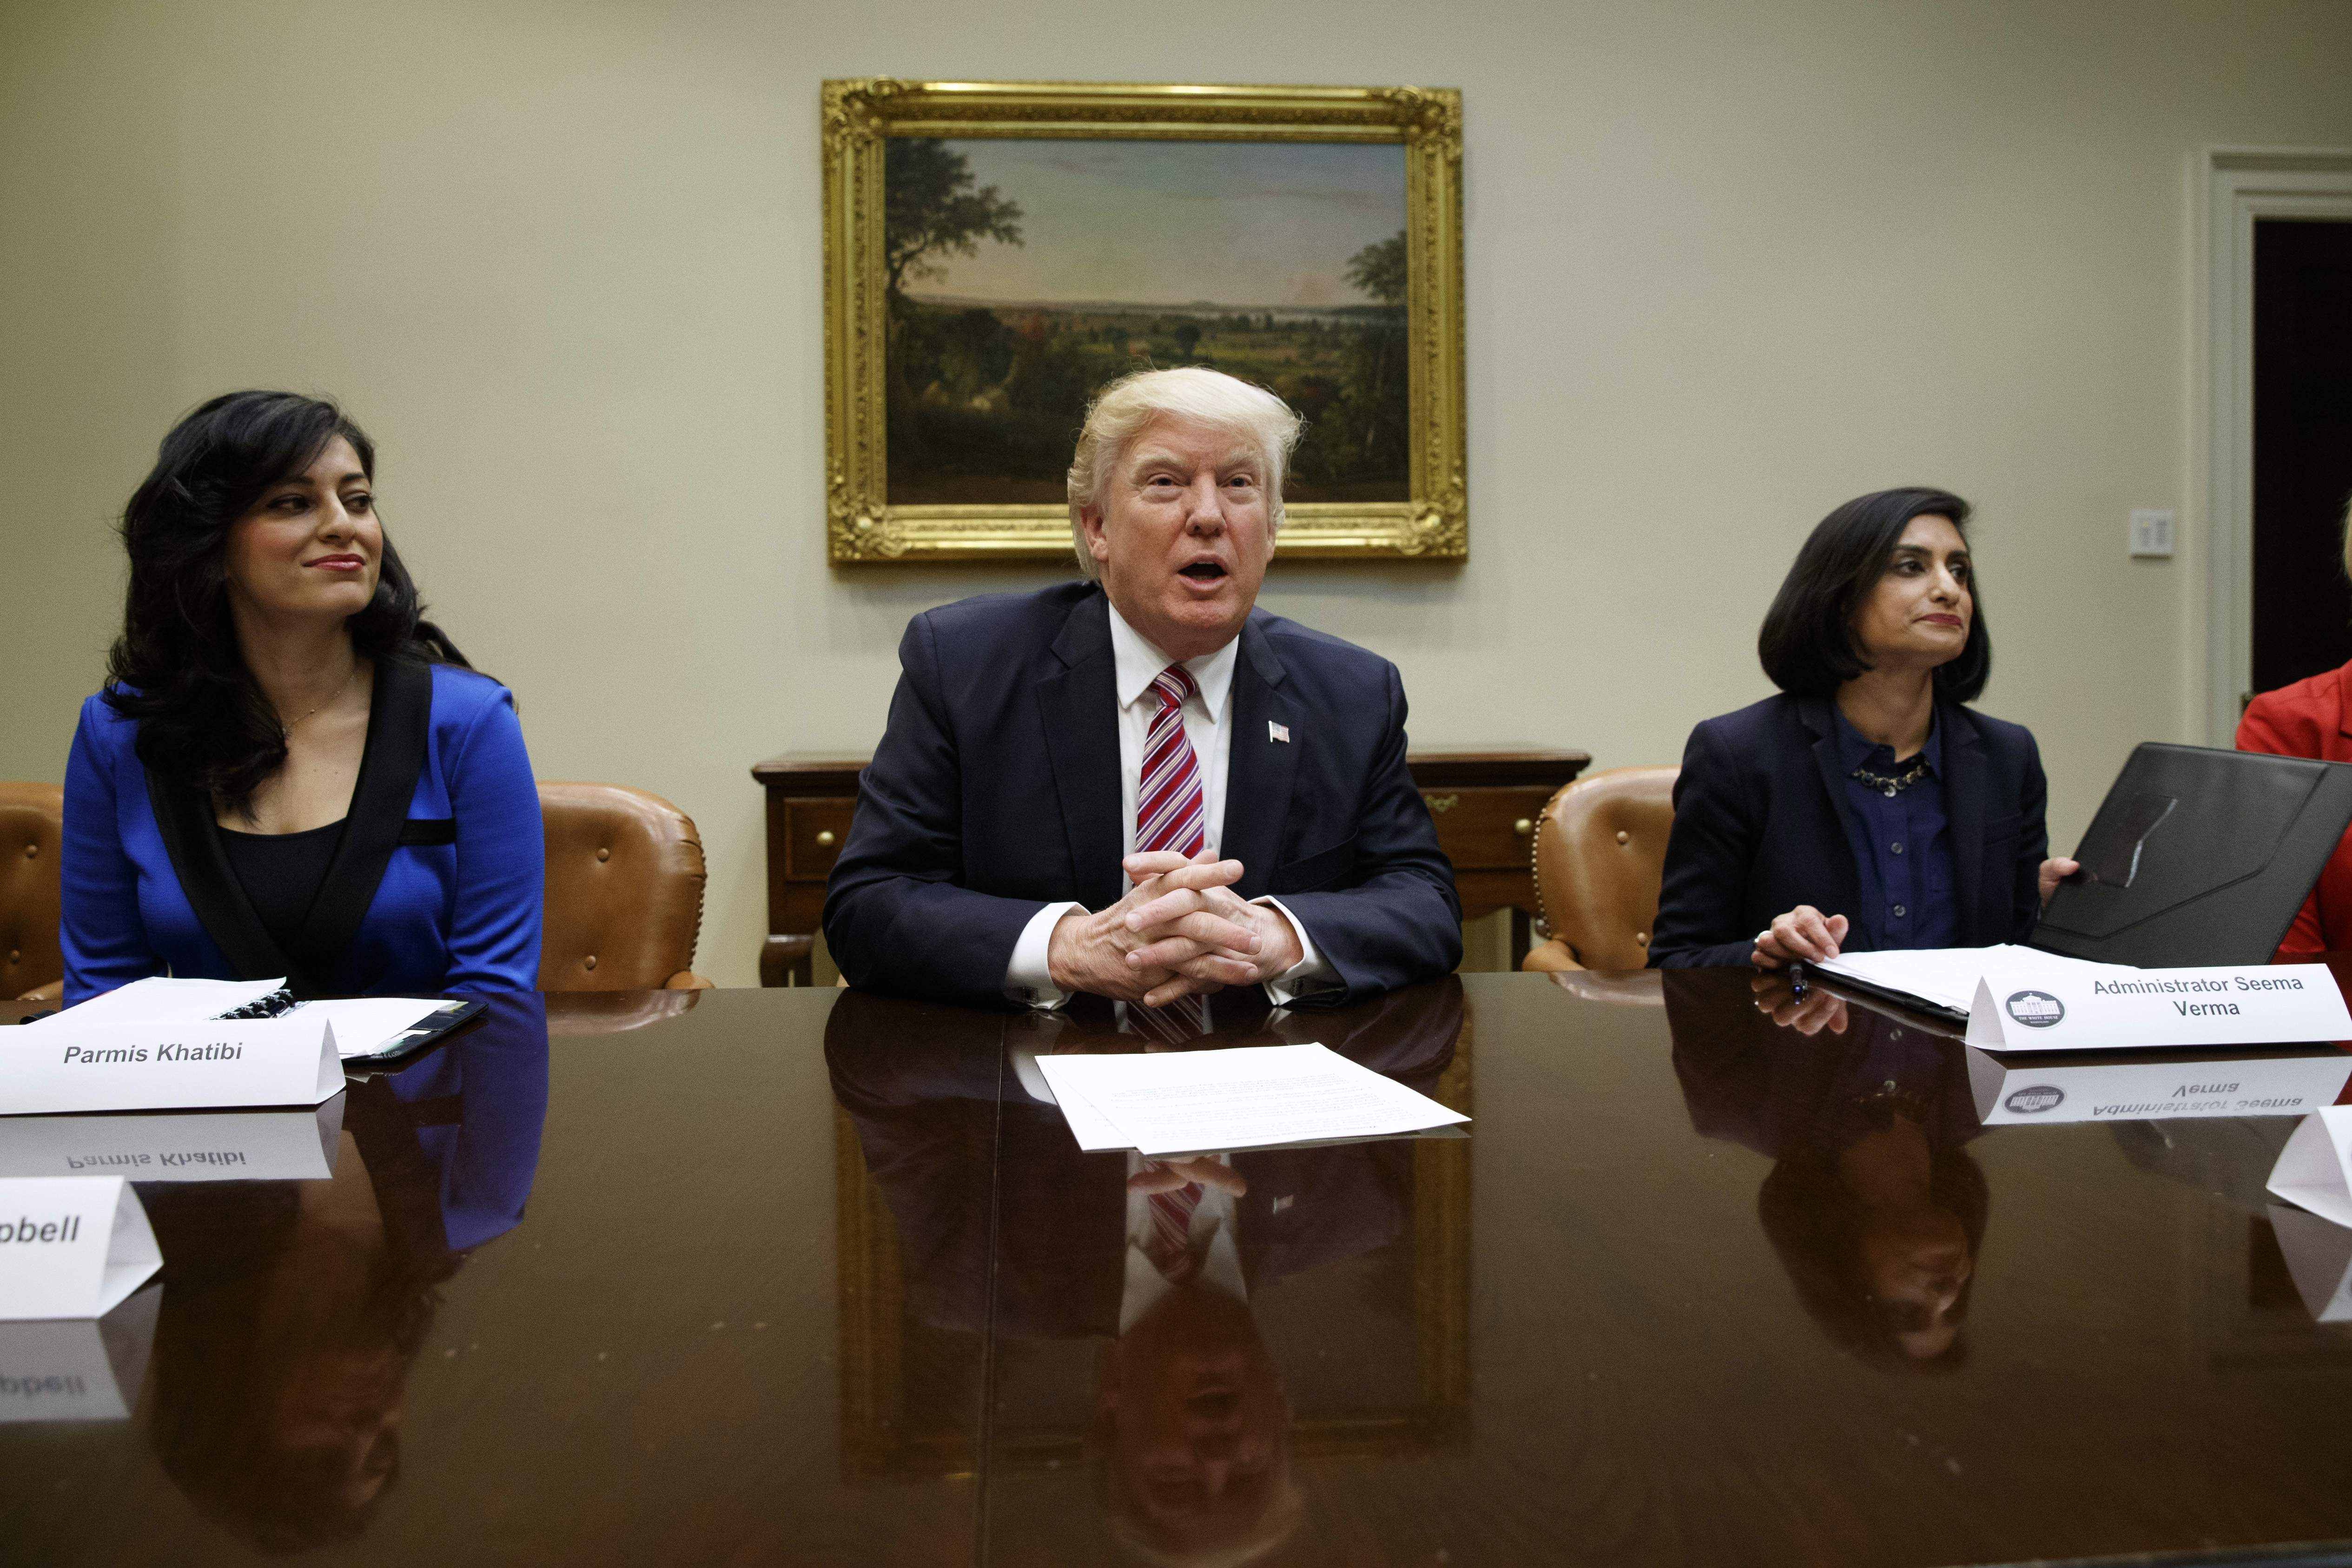 DAY 62 - In this March 22, 2017, file photo, President Donald Trump speaks during a meeting on women in healthcare in the Roosevelt Room of the White House in Washington. From left are, Parmis Khatibi, Trump, and administrator of the Centers for Medicare and Medicaid Services Seema Verma. (AP Photo/Evan Vucci, File)